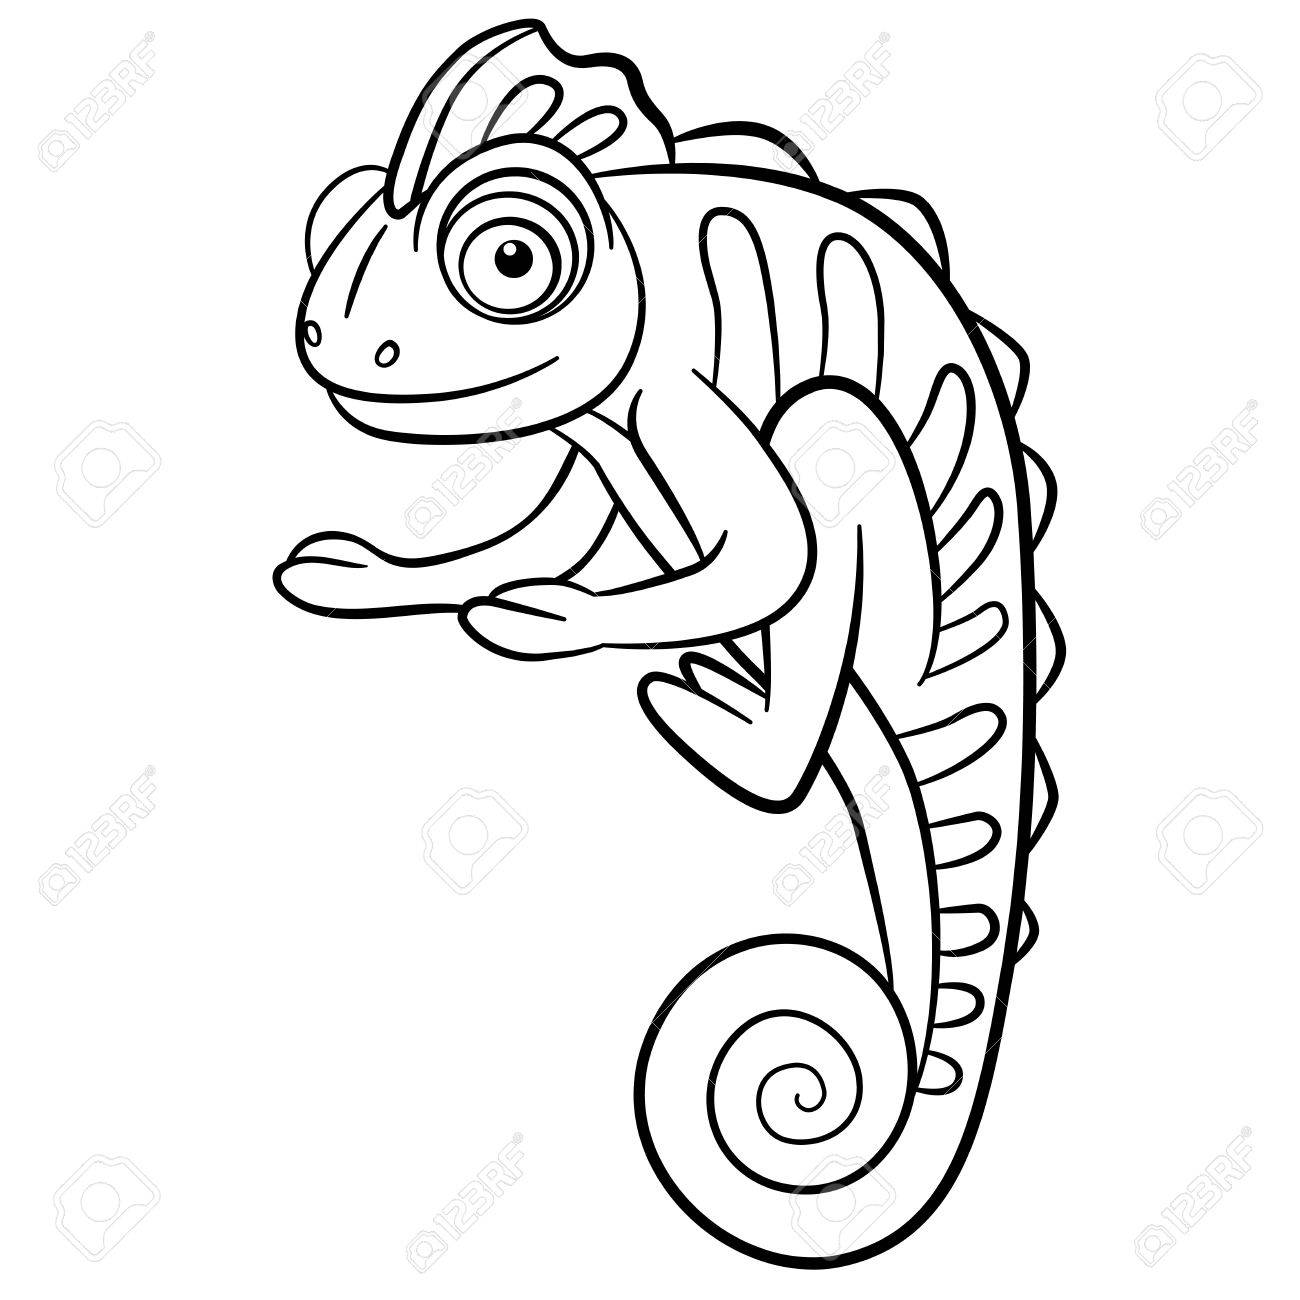 Coloring Pages Wild Animals Little Cute Chameleon Smiles Stock Vector